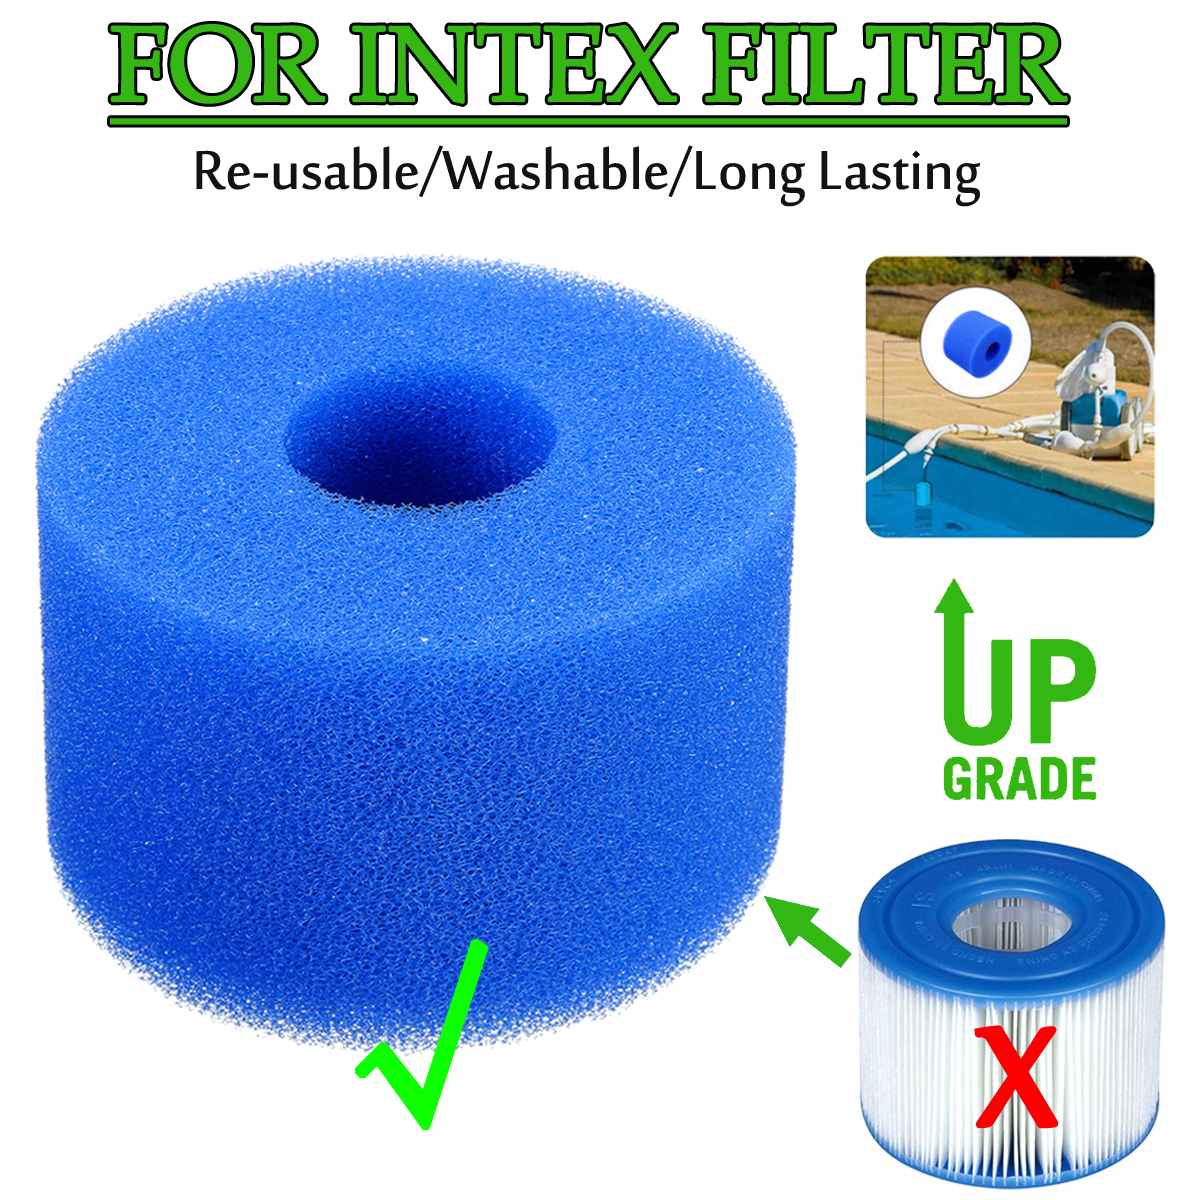 Swimming Pool Foam Filter Sponge For Intex Type A Reusable Washable Biofoam Clean Filter Foam Sponges Swimming Pool Accessories